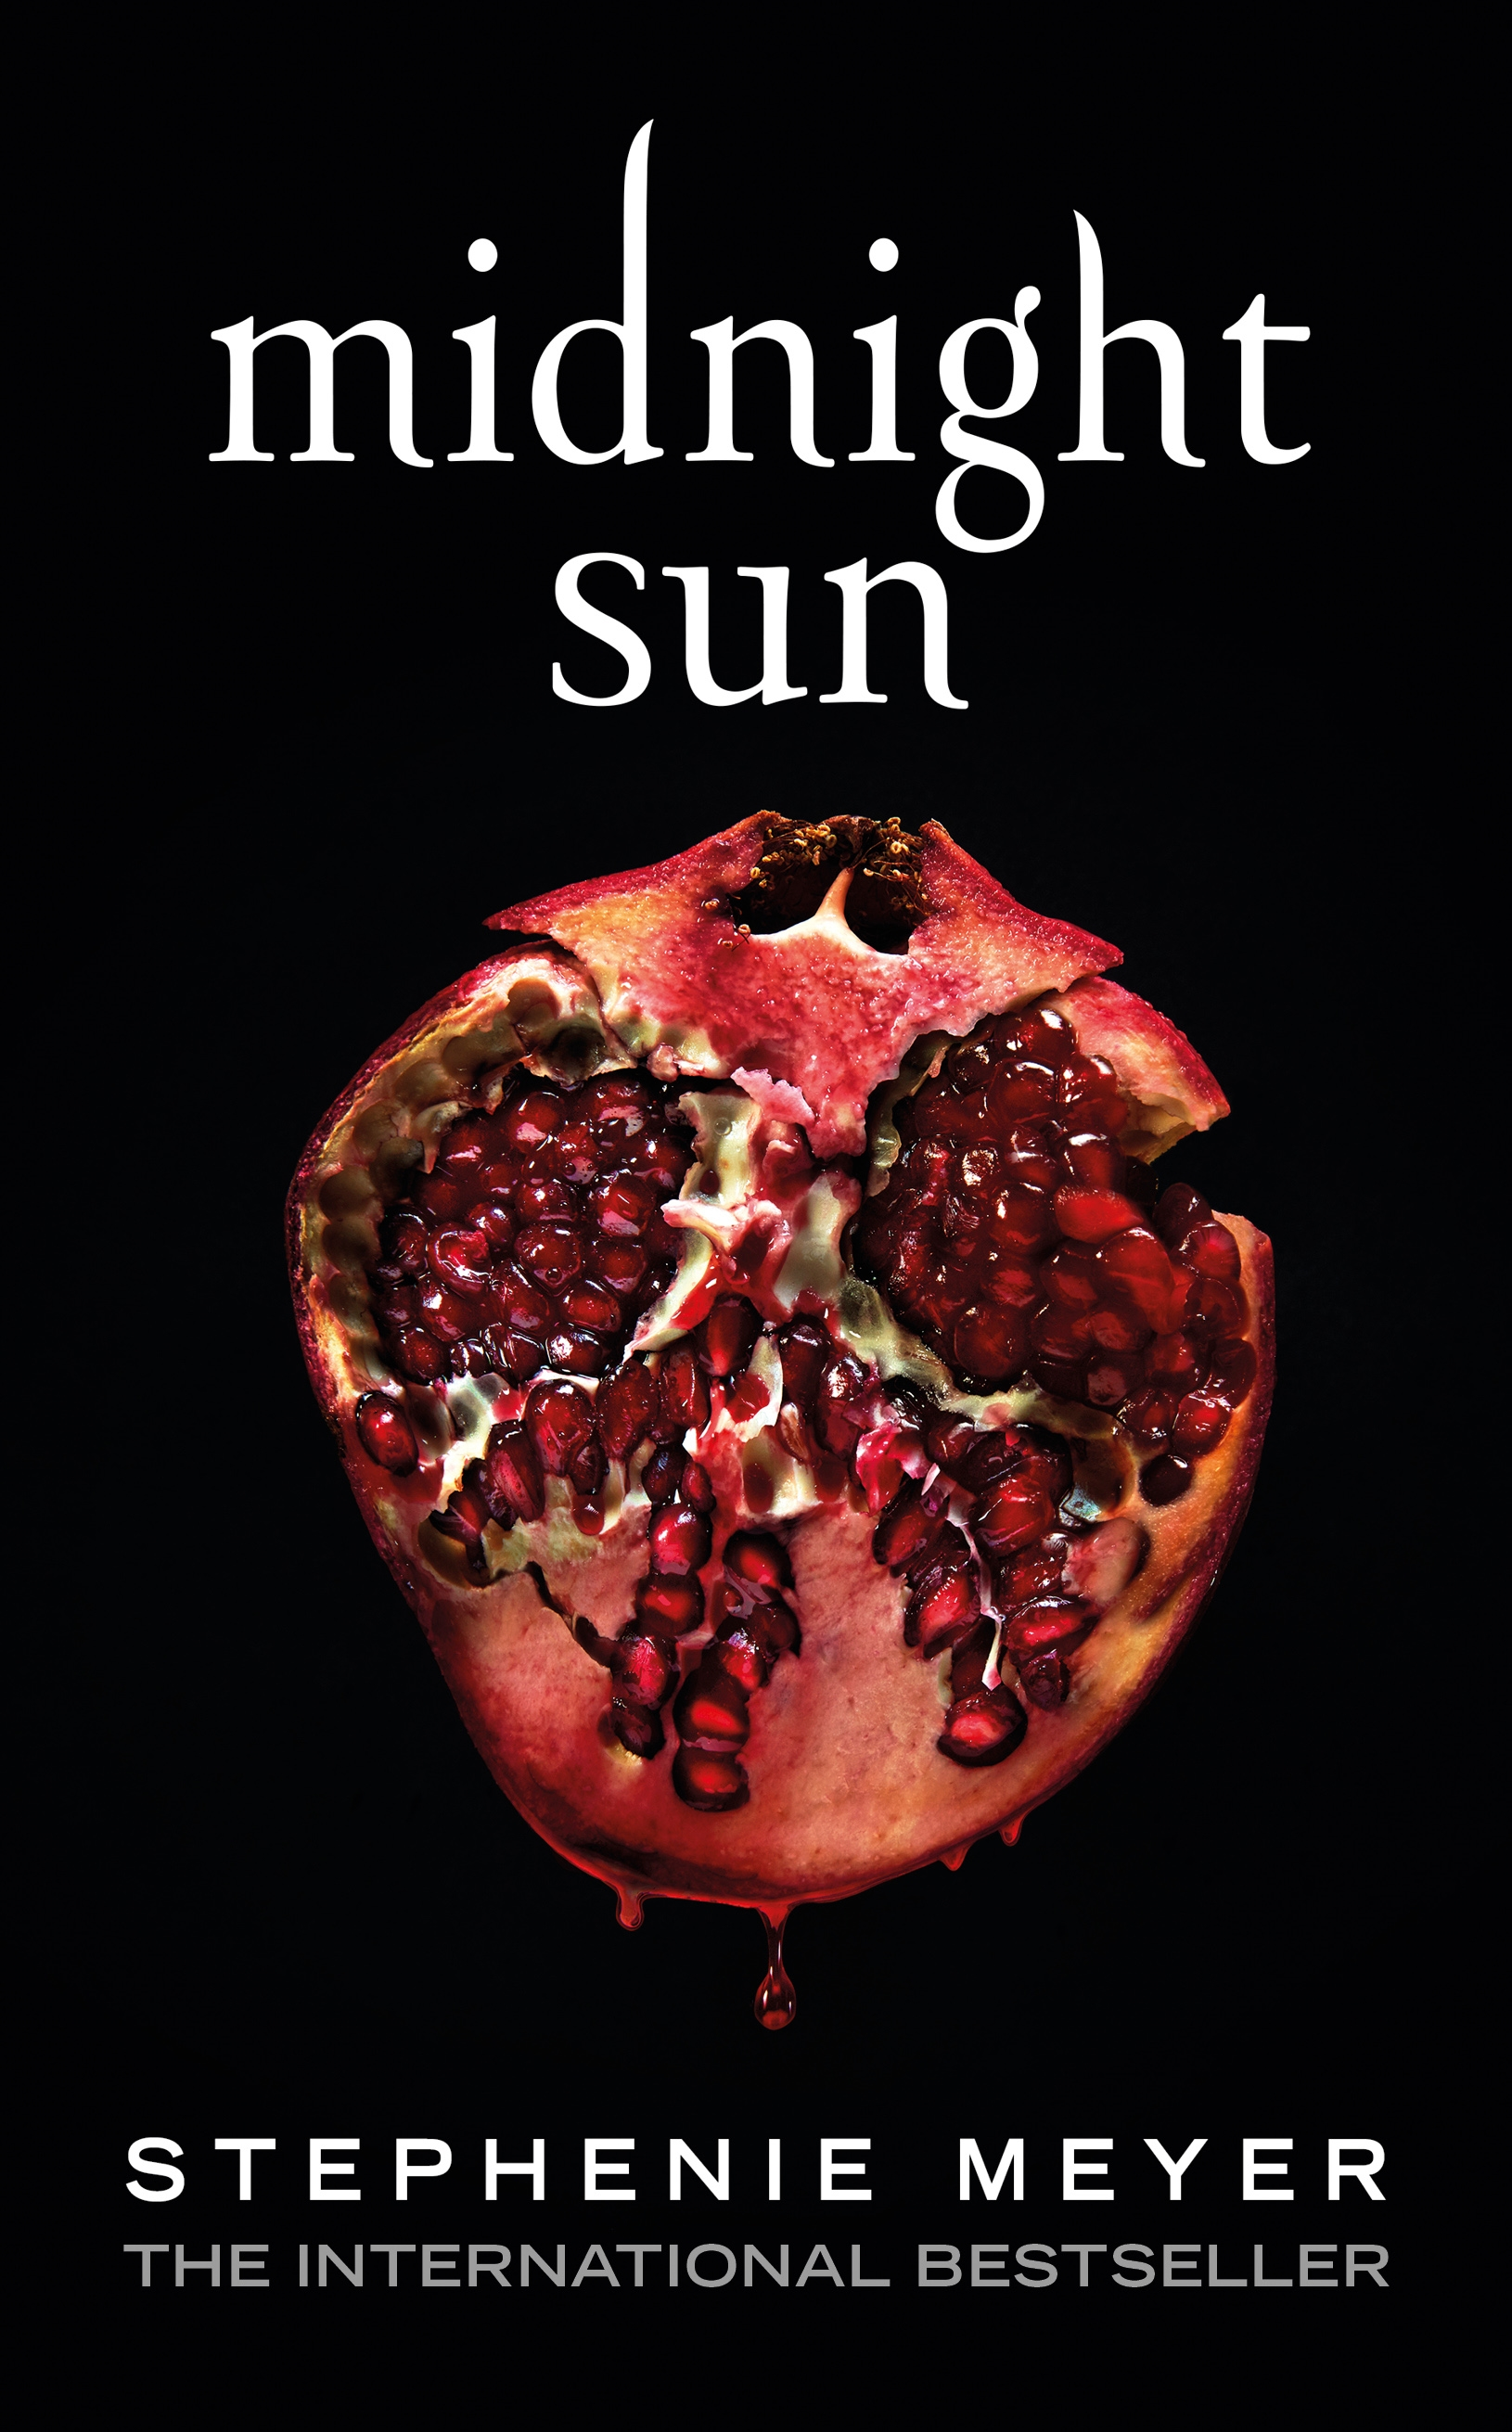 Midnight sun cover